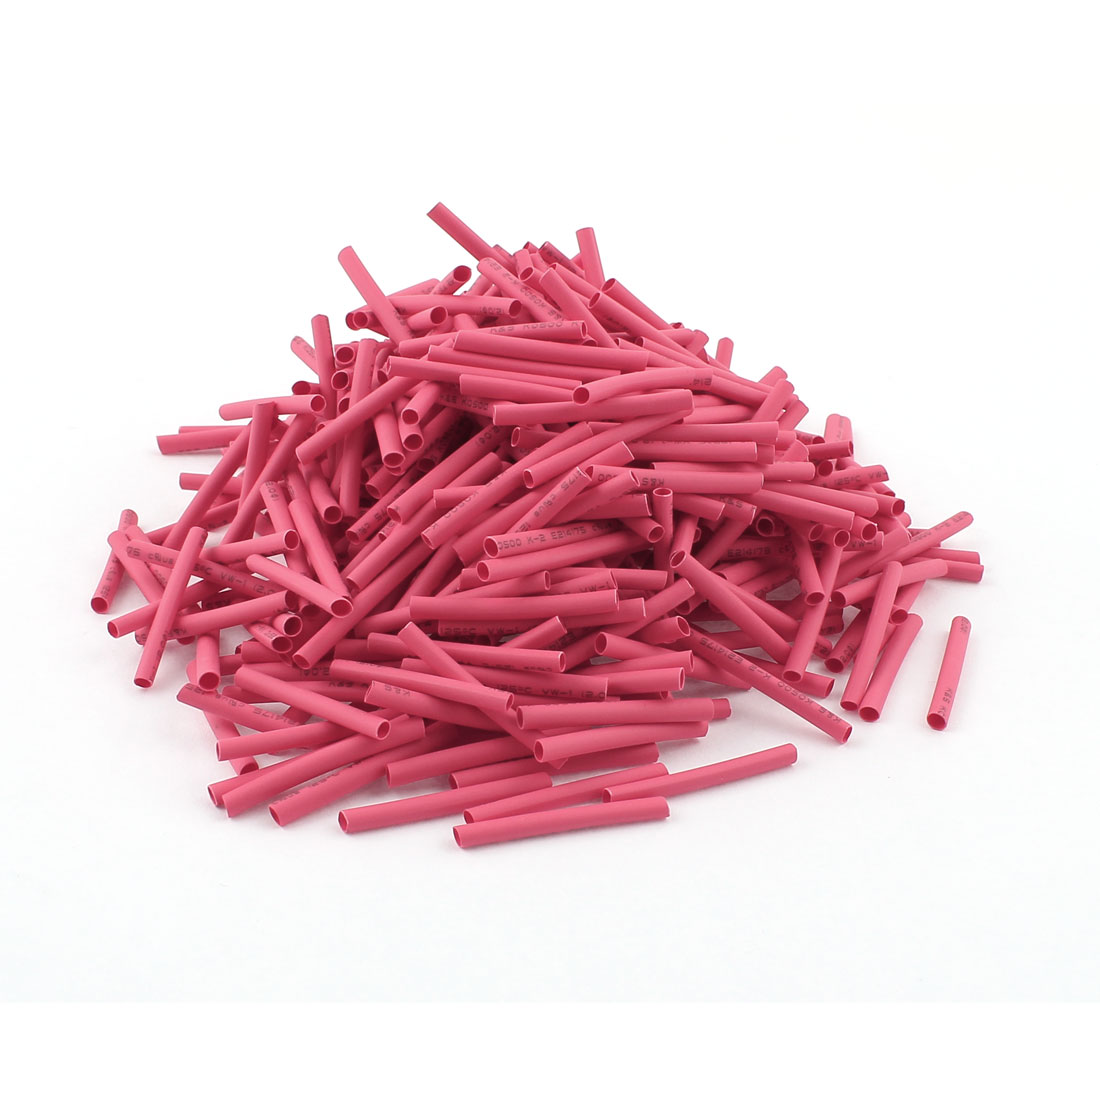 Red 2mm Dia 2:1 Polyolefin Heat Shrink Tubing Shrinkable Tube 30mm 460pcs